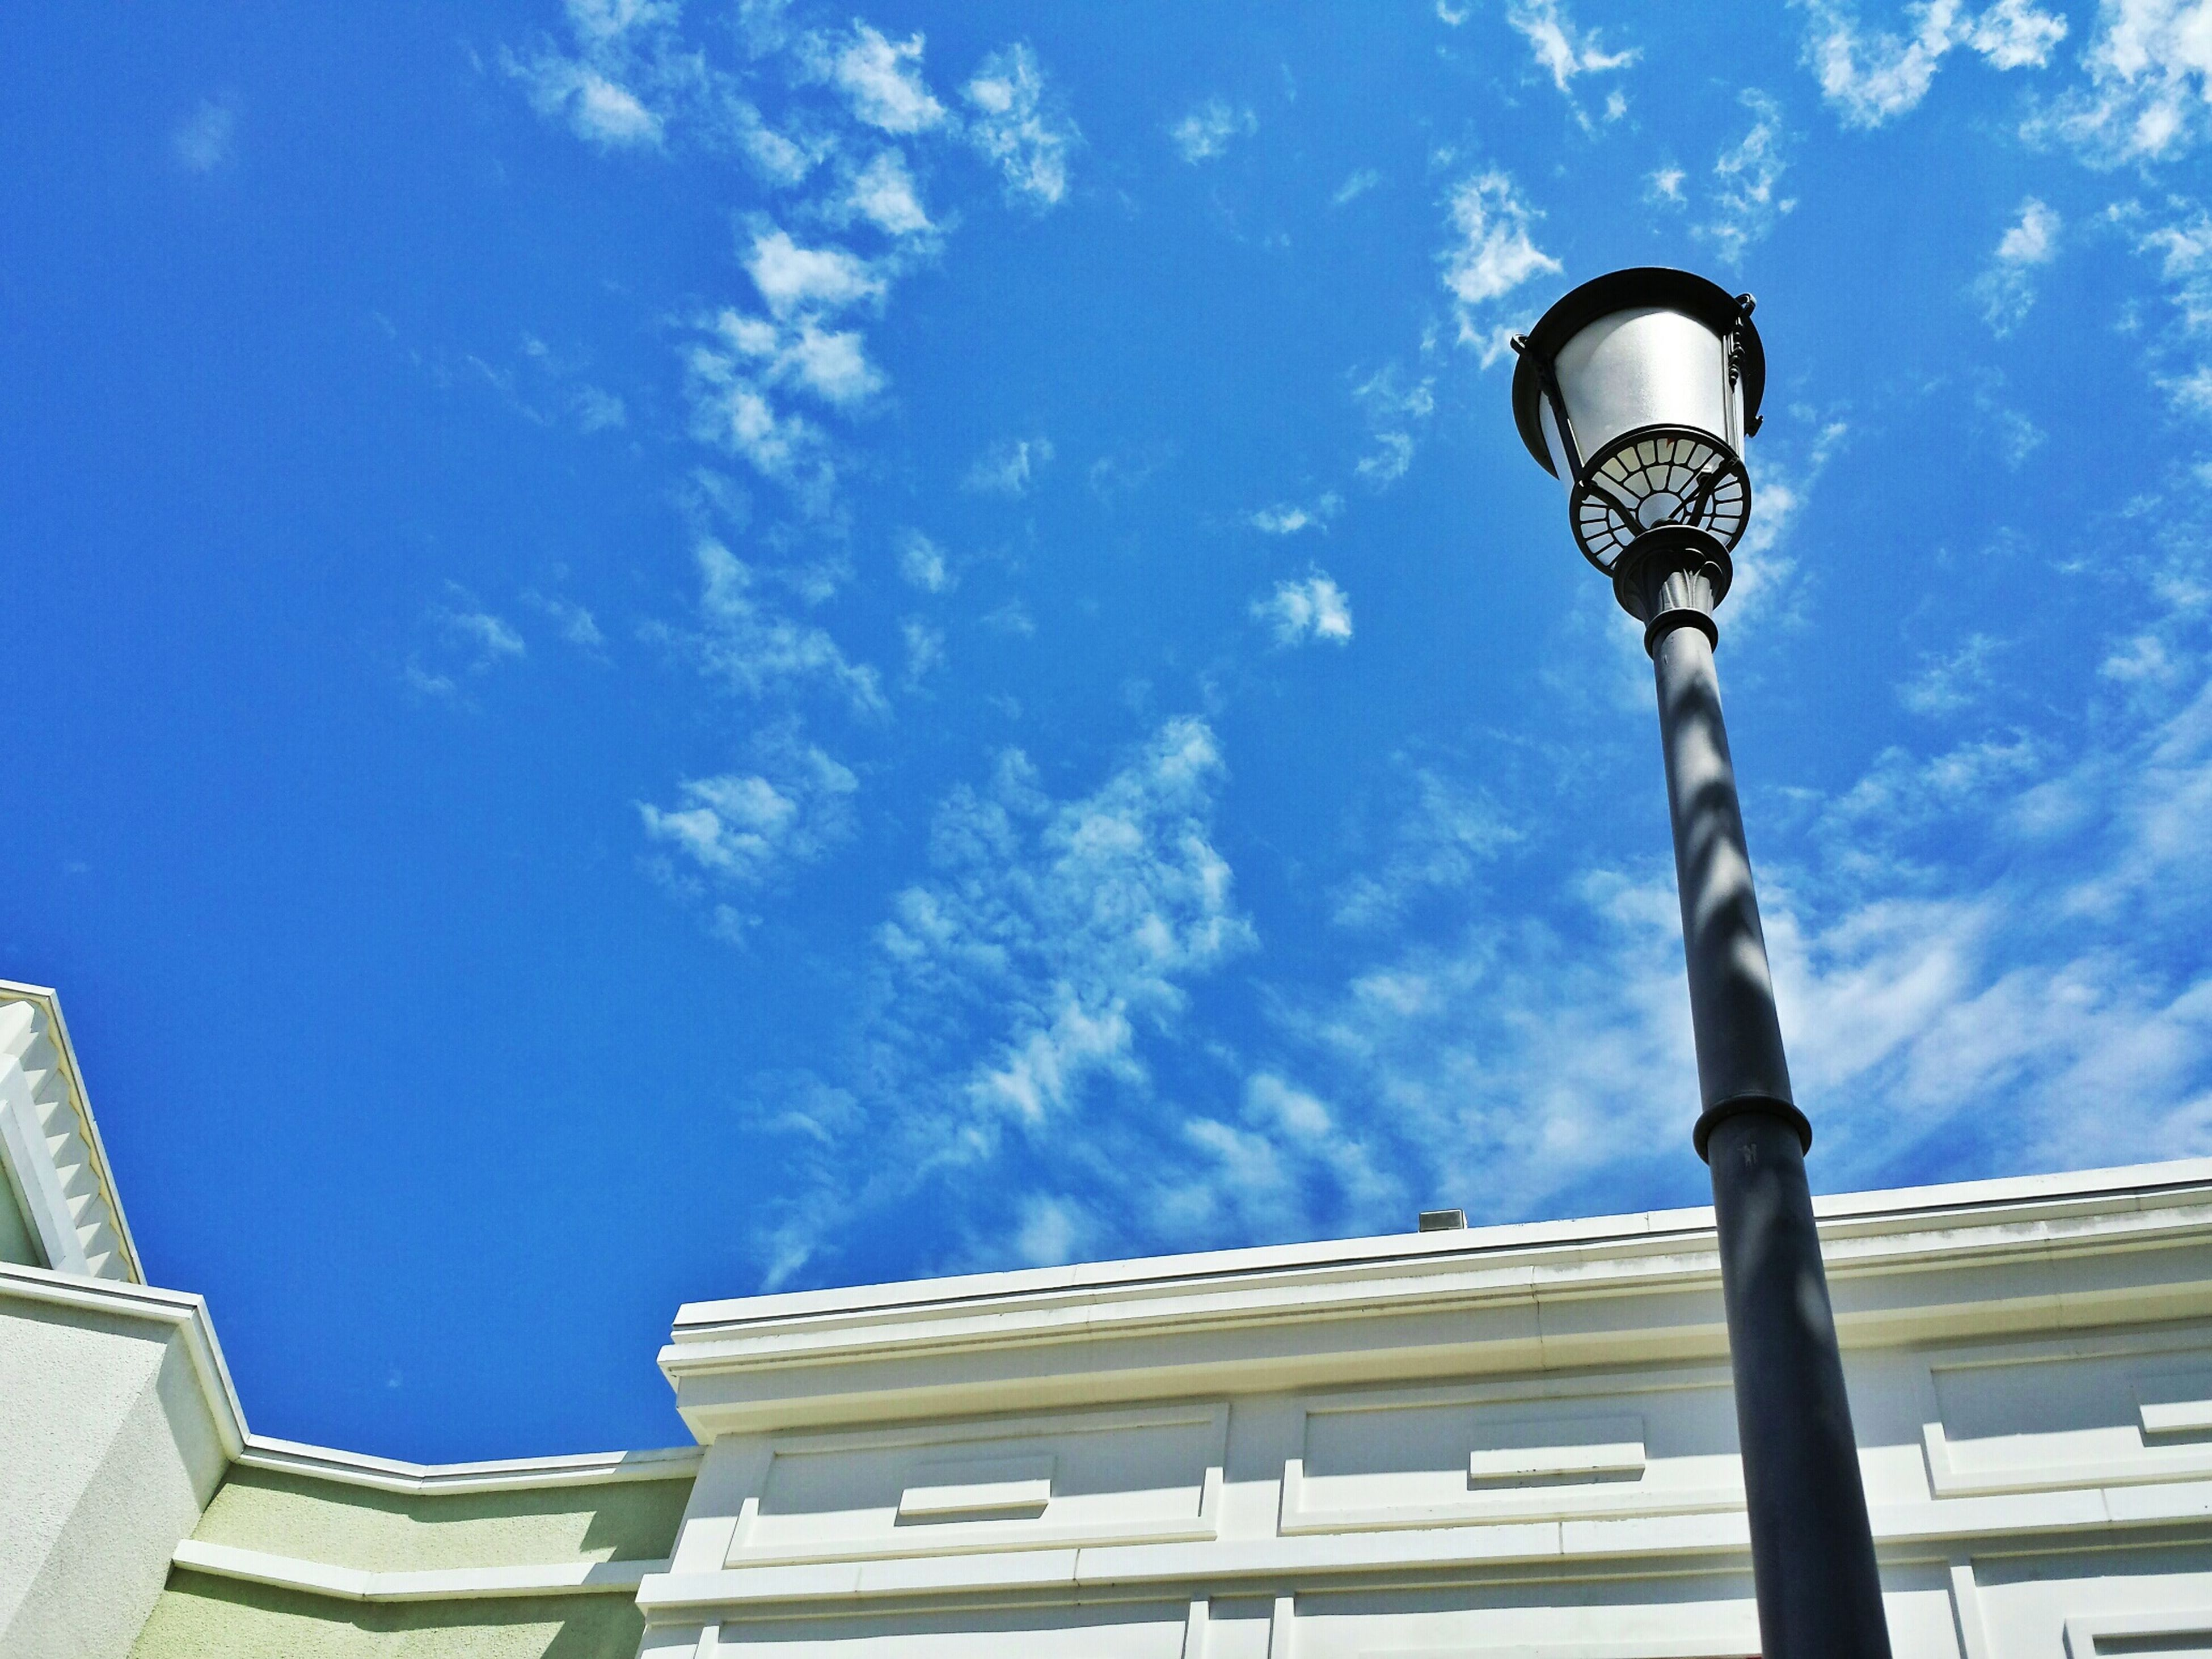 low angle view, architecture, building exterior, built structure, sky, street light, blue, lighting equipment, building, cloud - sky, high section, residential building, city, cloud, day, outdoors, no people, residential structure, sunlight, tower